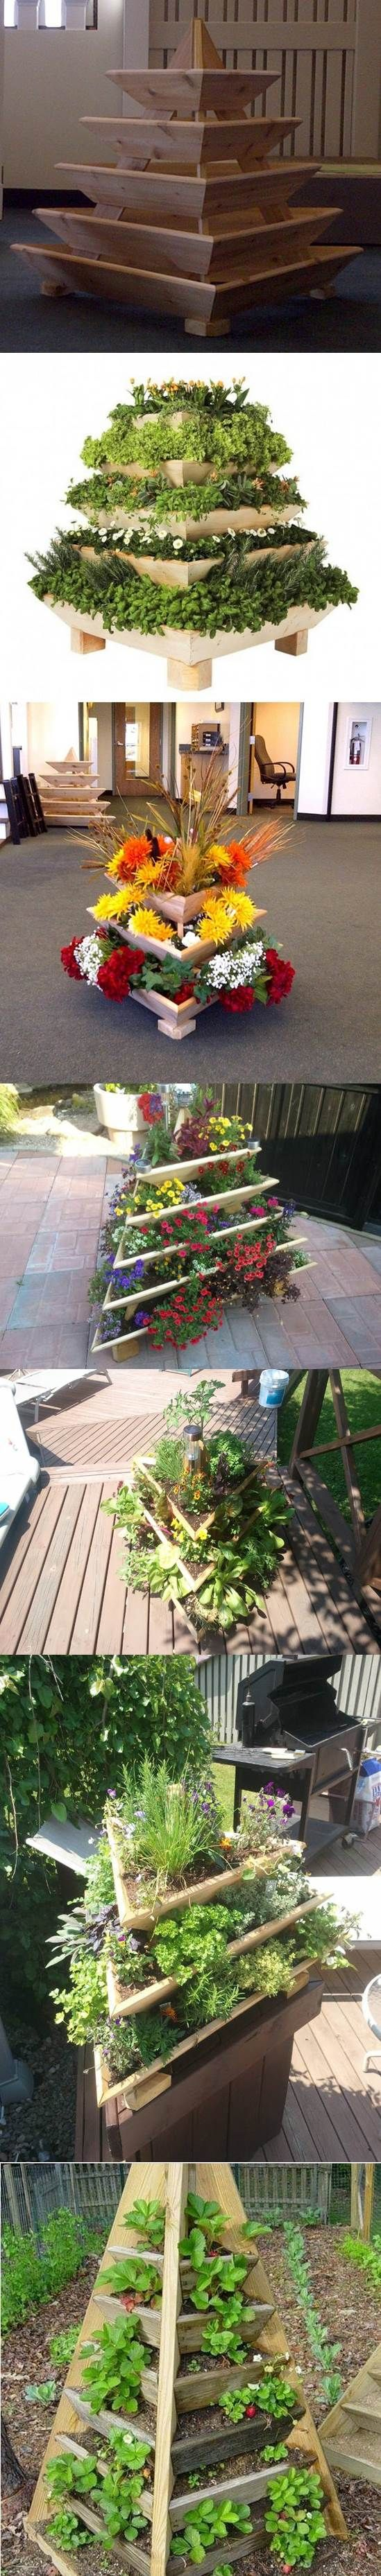 Creative Idea of Home Gardening - Triolife Plant Pyramid | iCreativeIdeas.com Like Us on Facebook ==> https://www.facebook.com/icreativeideas